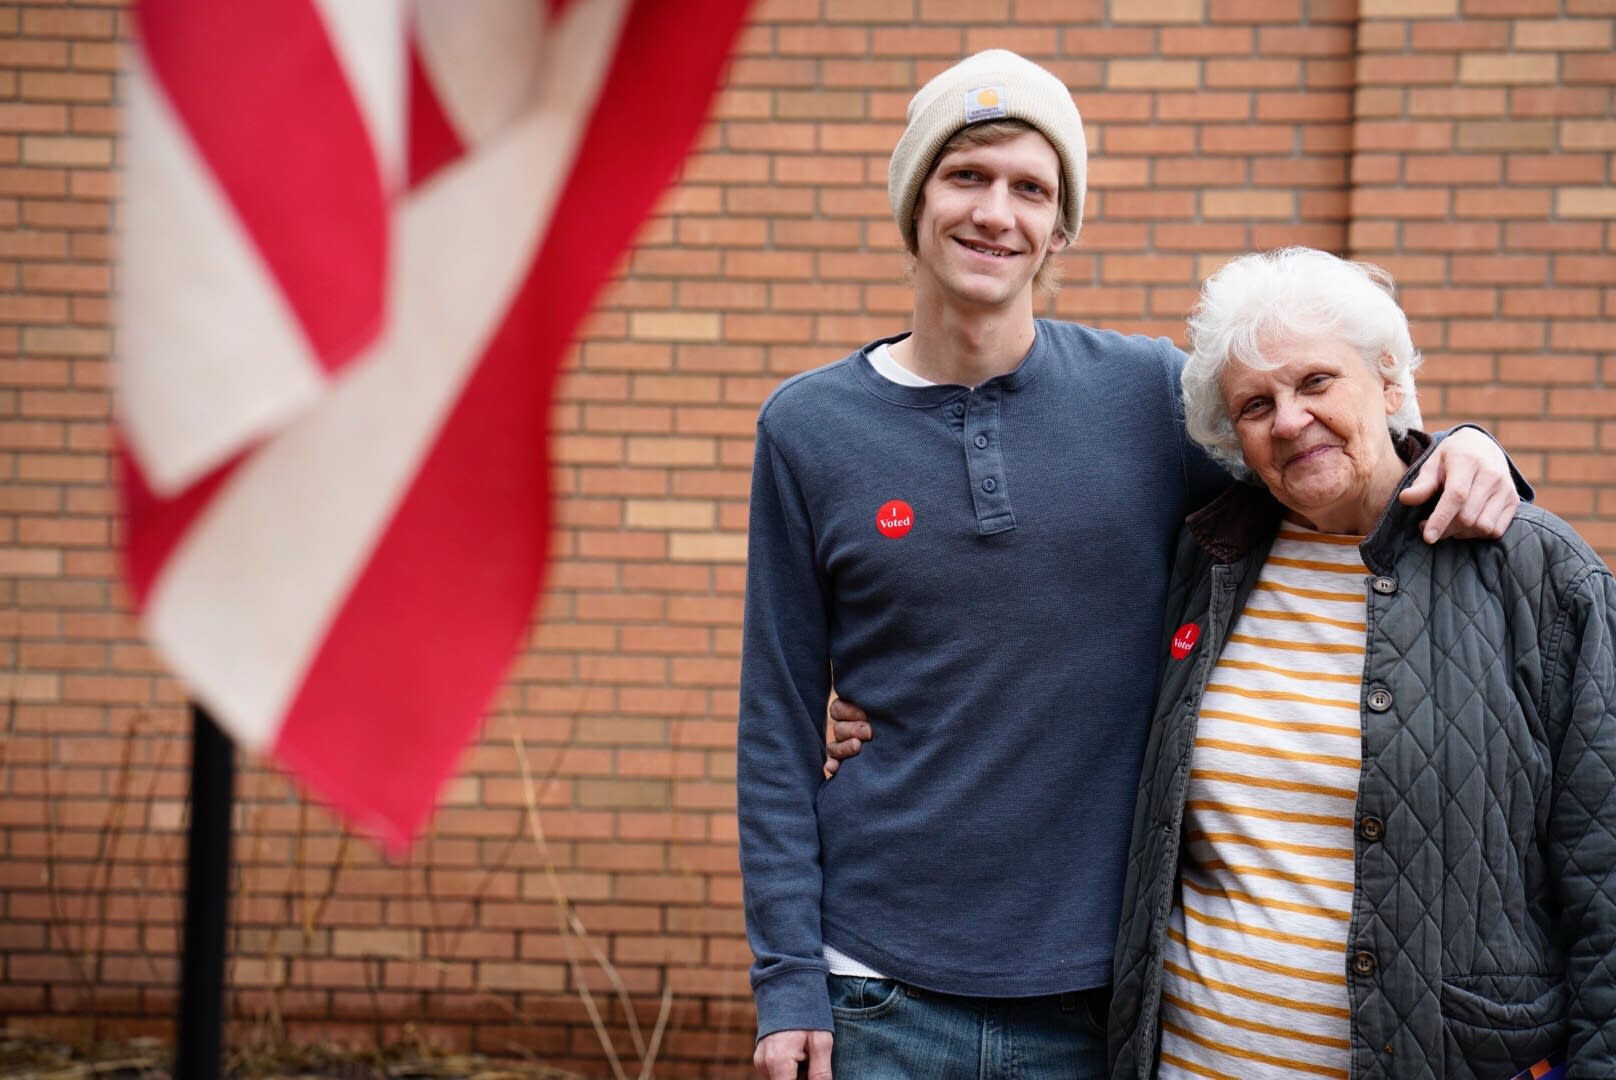 Voters Kathy King and her son, Cory, after voting in the 2nd District.